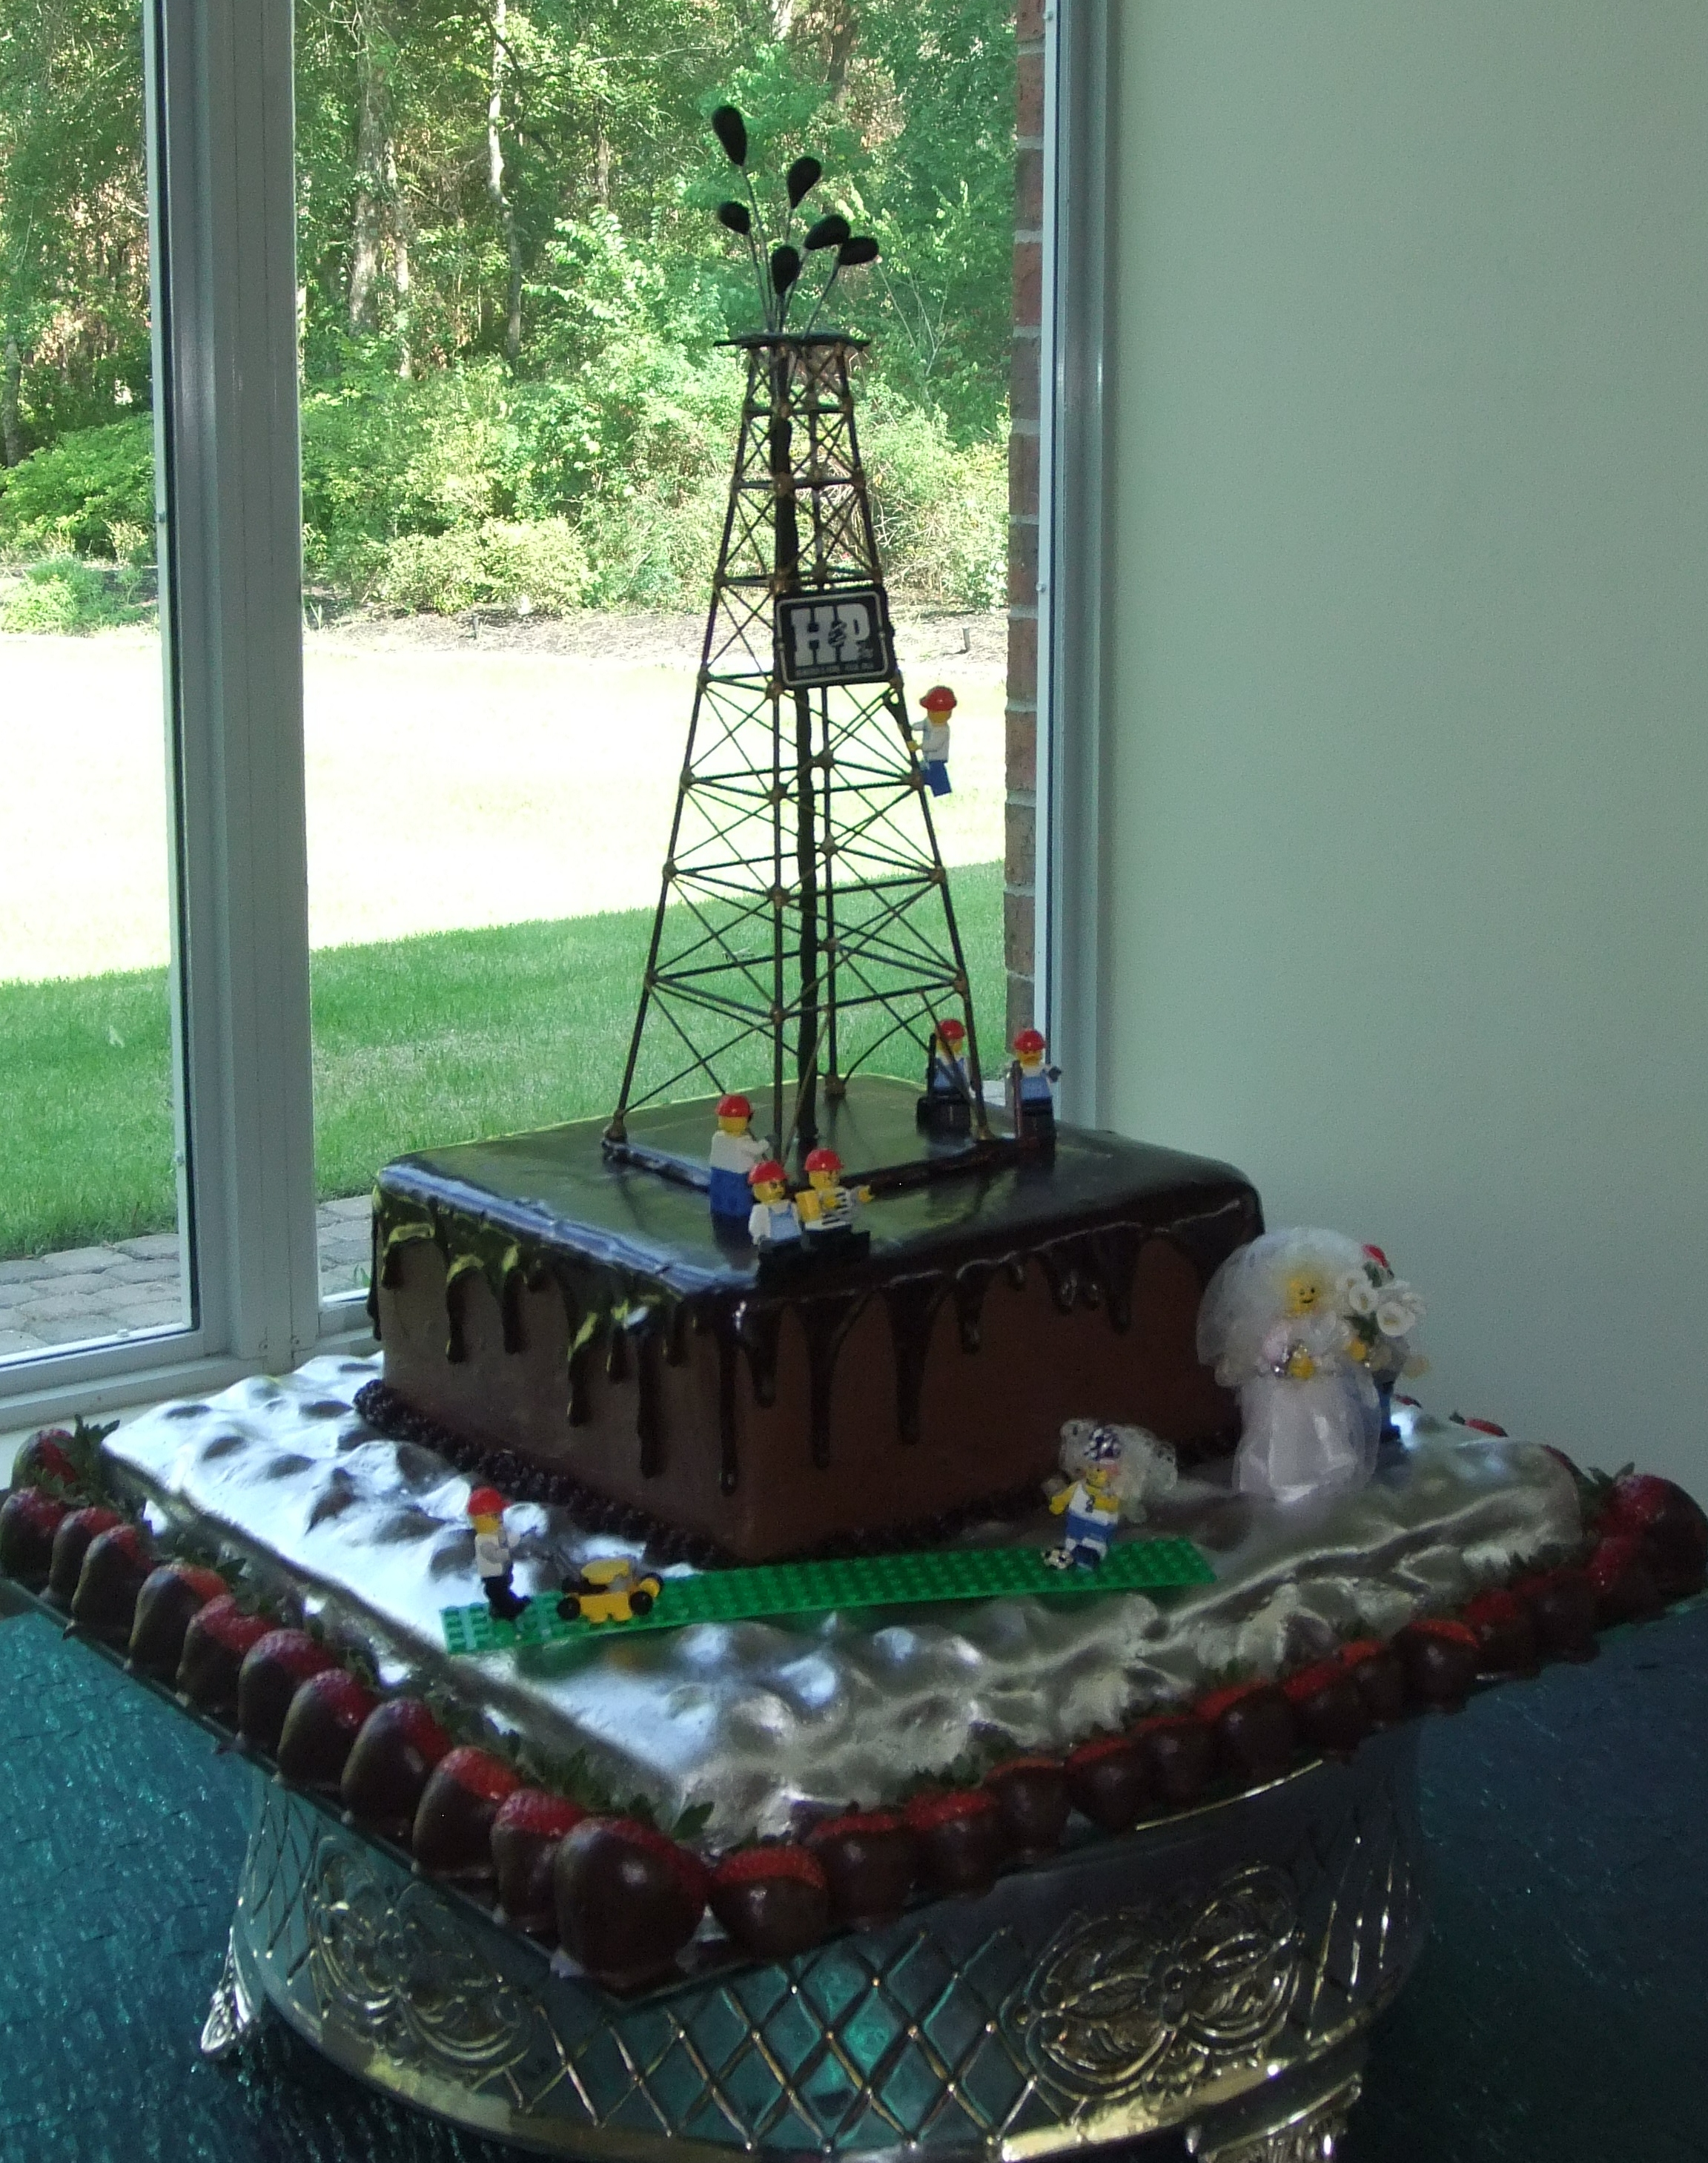 Oil well and quilted metal-look